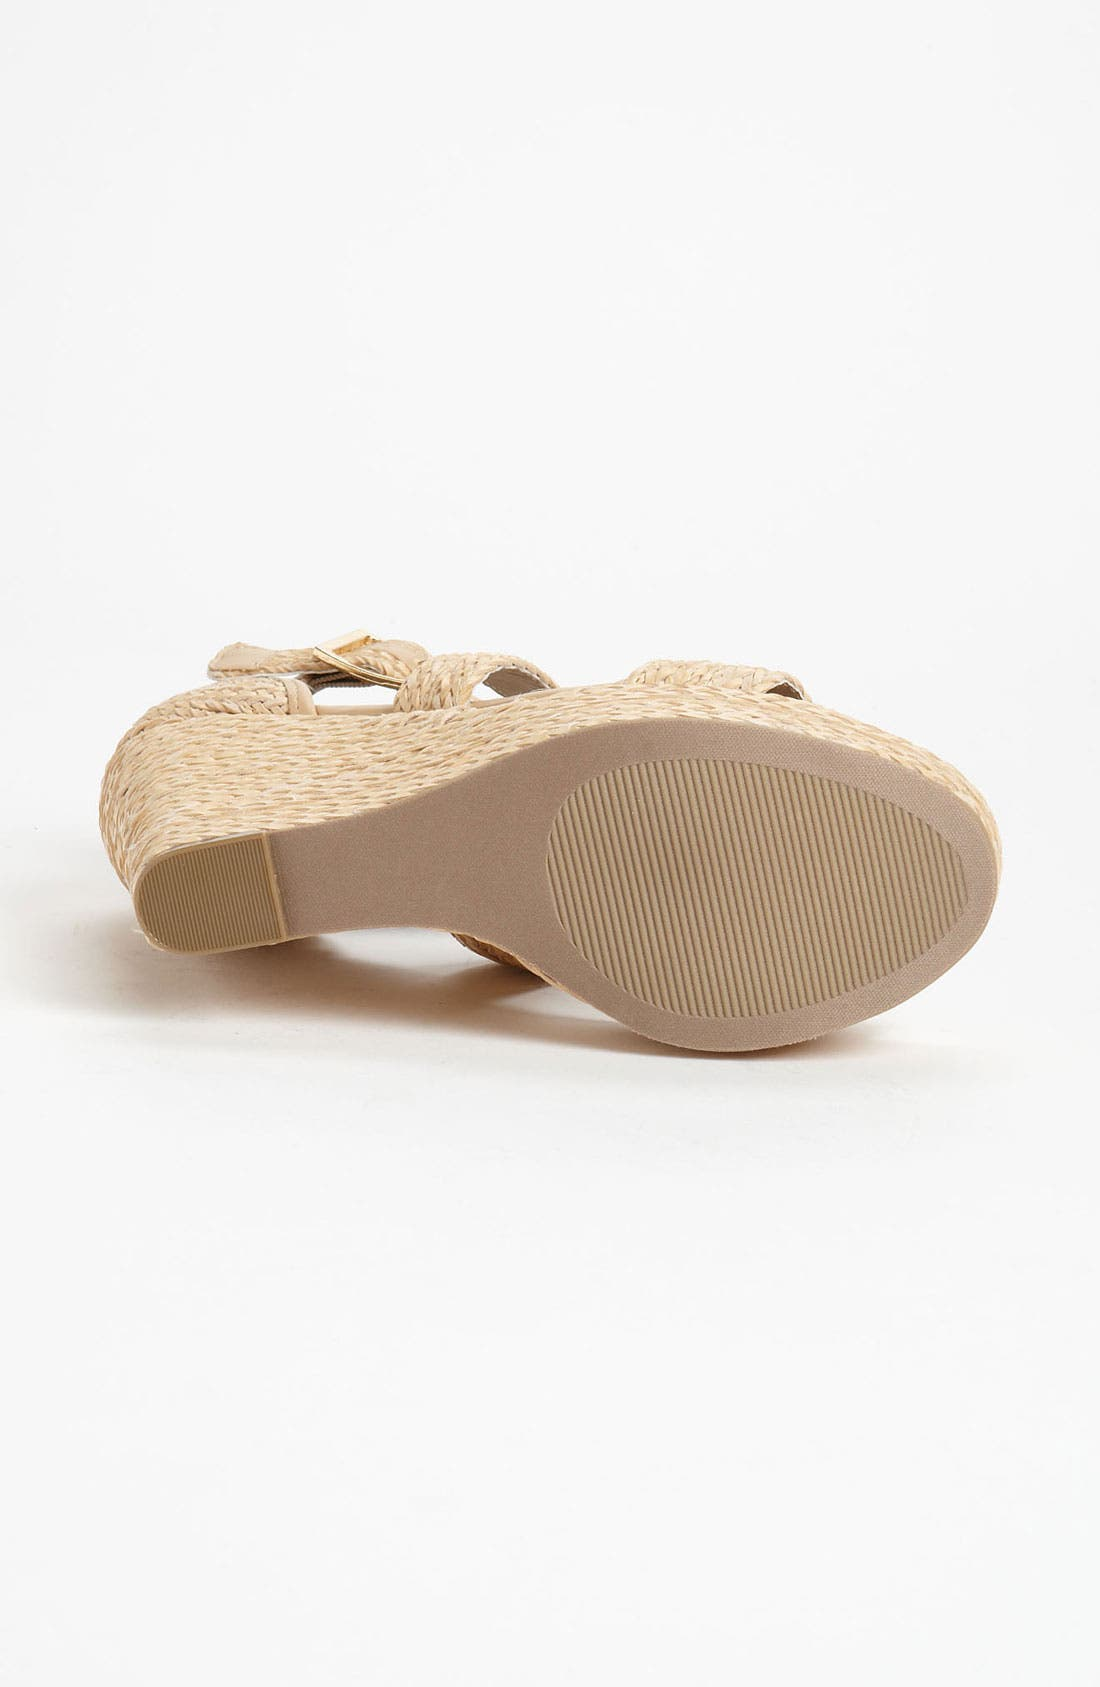 'Haywire' Wedge Sandal,                             Alternate thumbnail 4, color,                             250